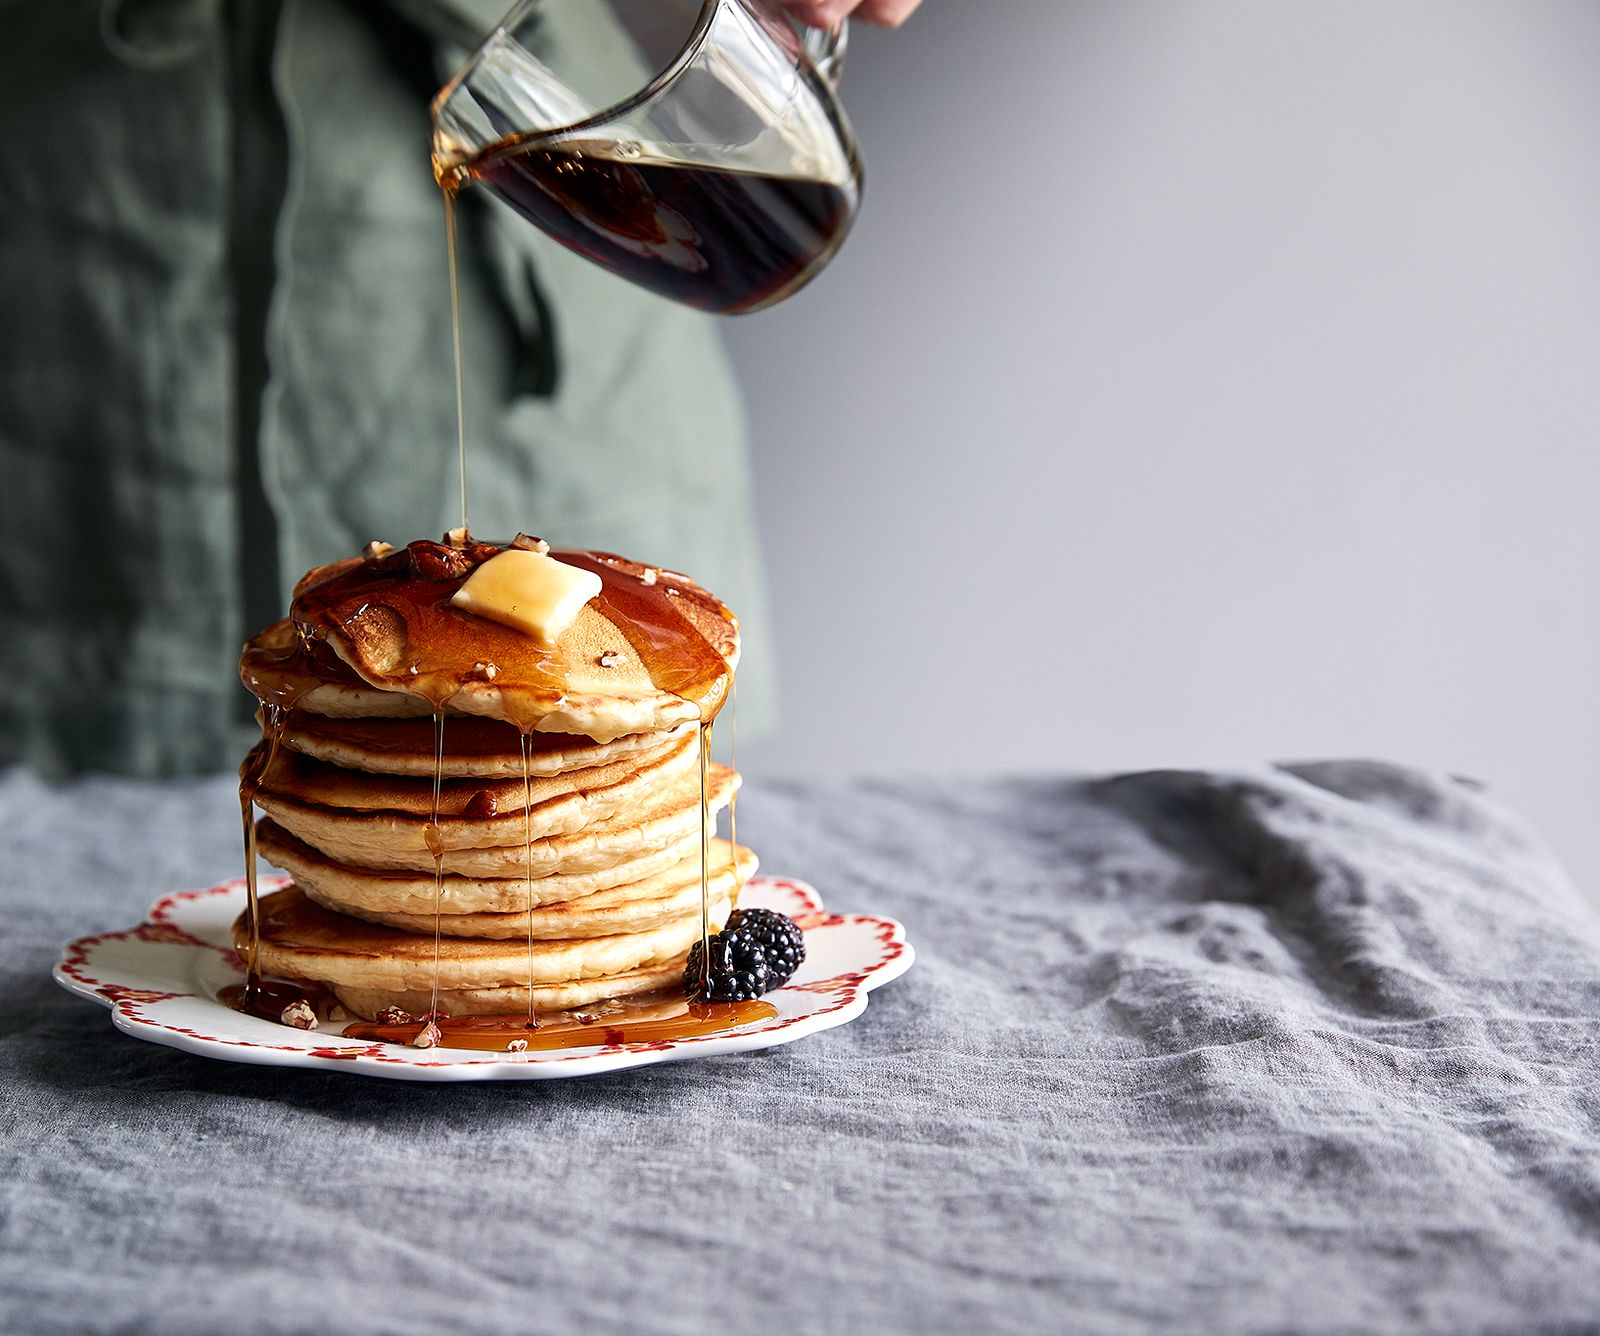 7 Pancake Ideas You'll Flip Over